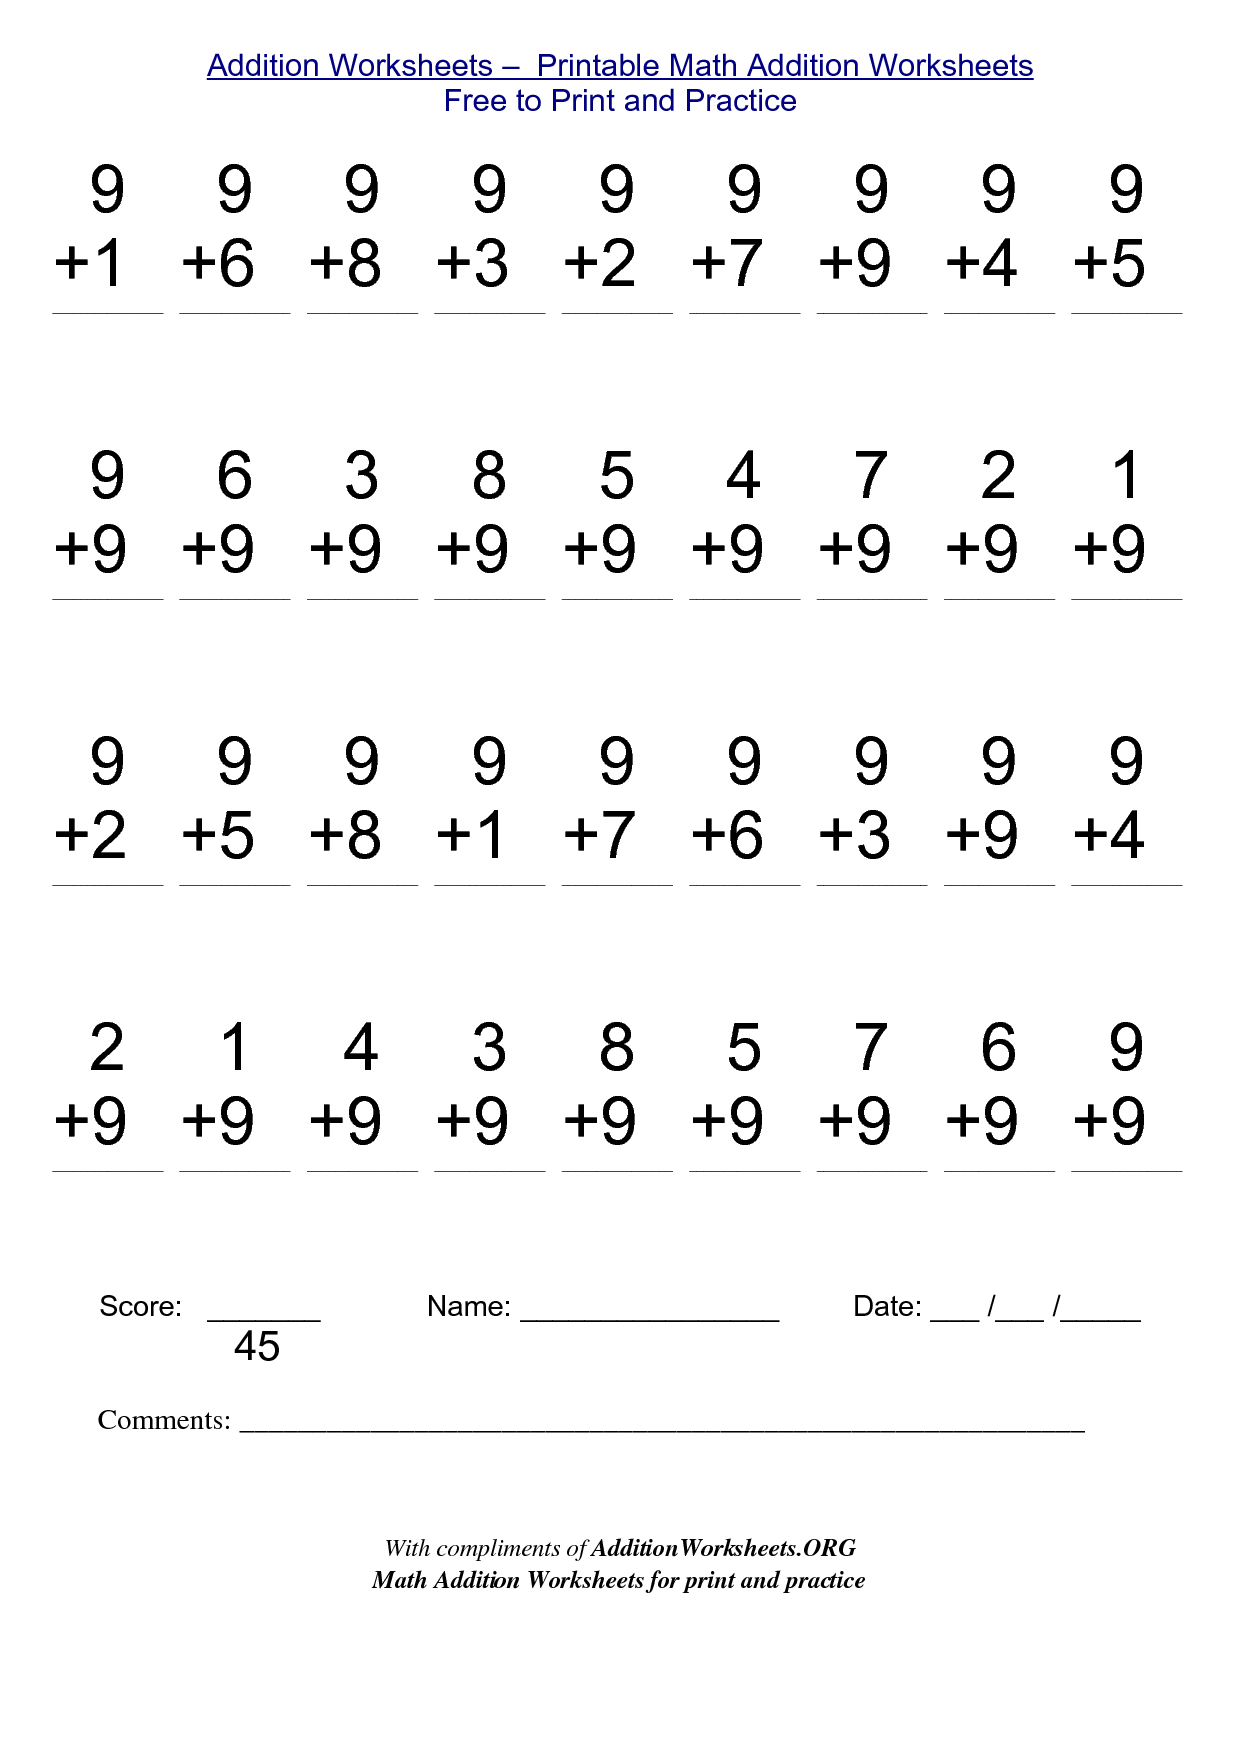 Math Worksheets for Free to Print Alot ME – Printing Math Worksheets